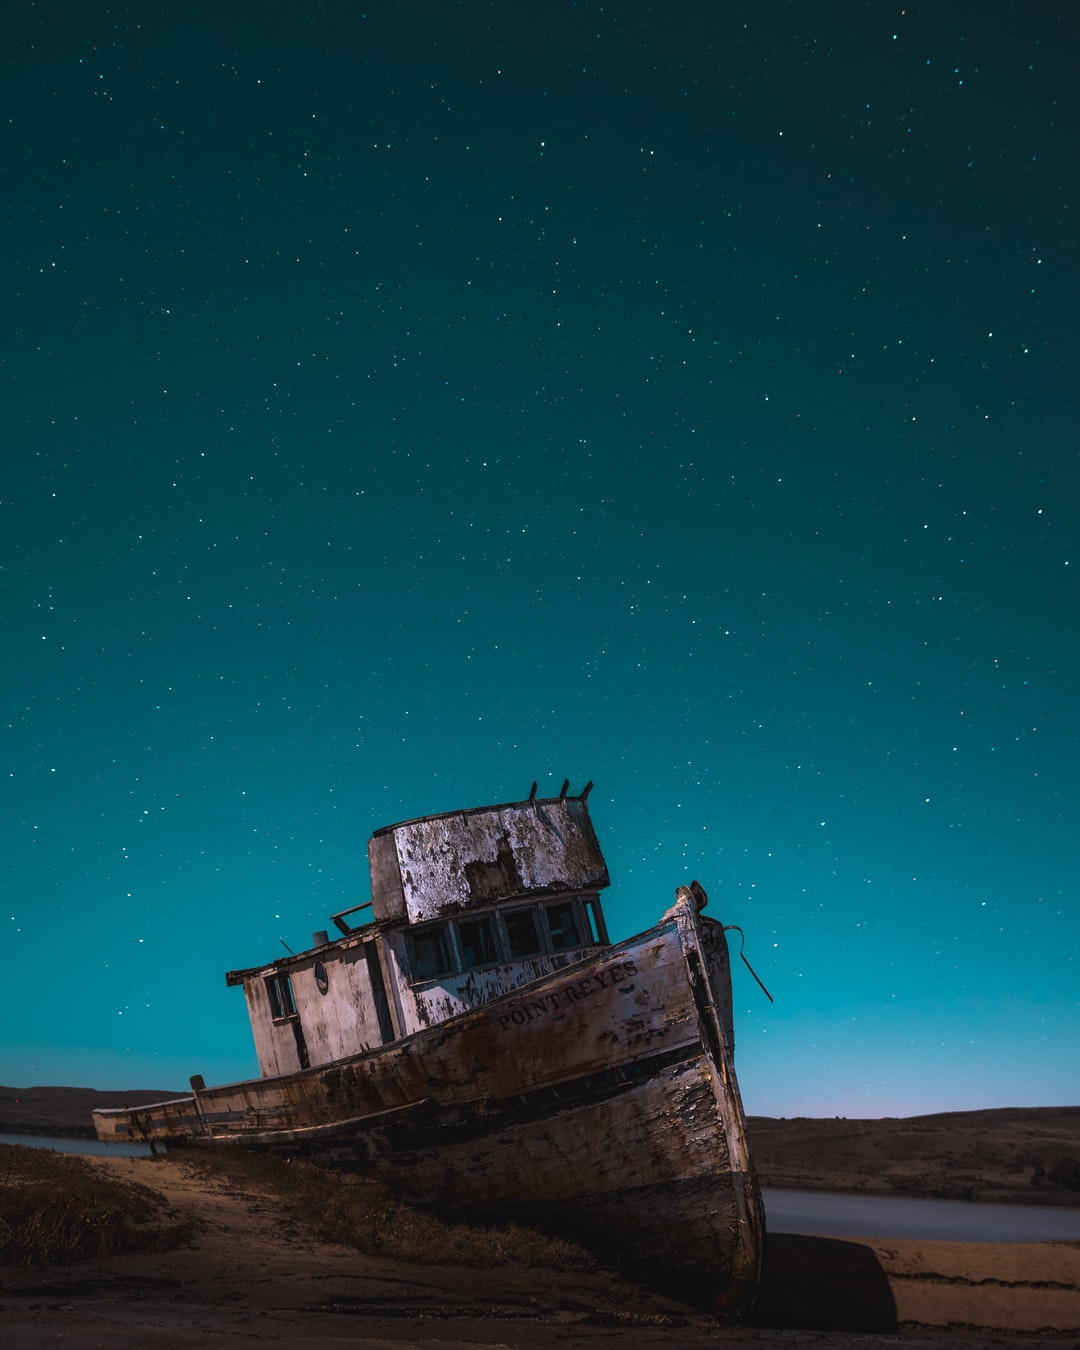 The Point Reyes shipwreck under a clear night sky.